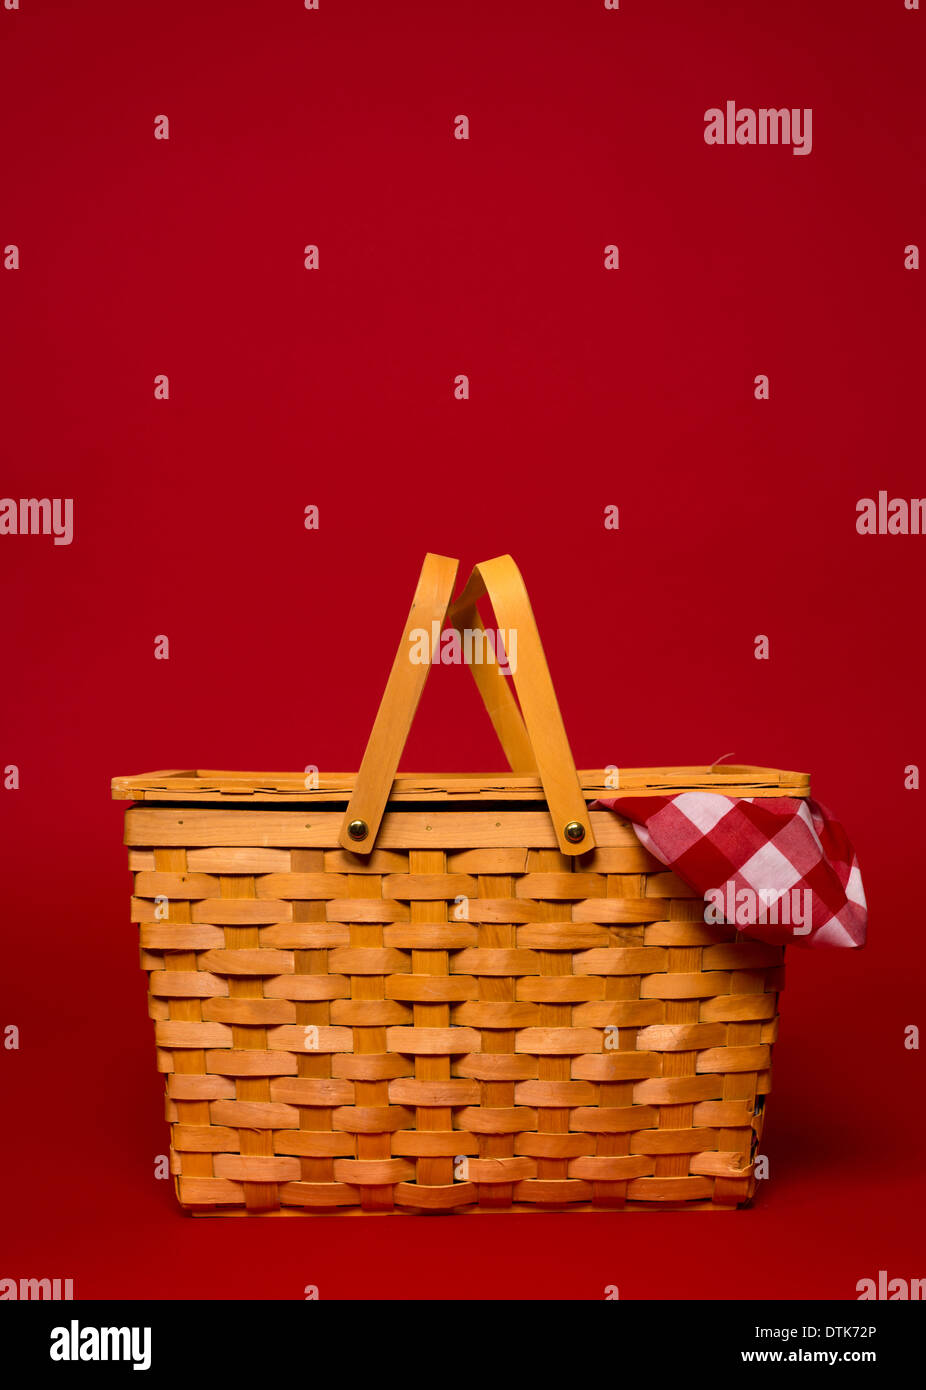 A brown, wicker picnic basket with red gingham tablecloth on a red background with copy space - Stock Image